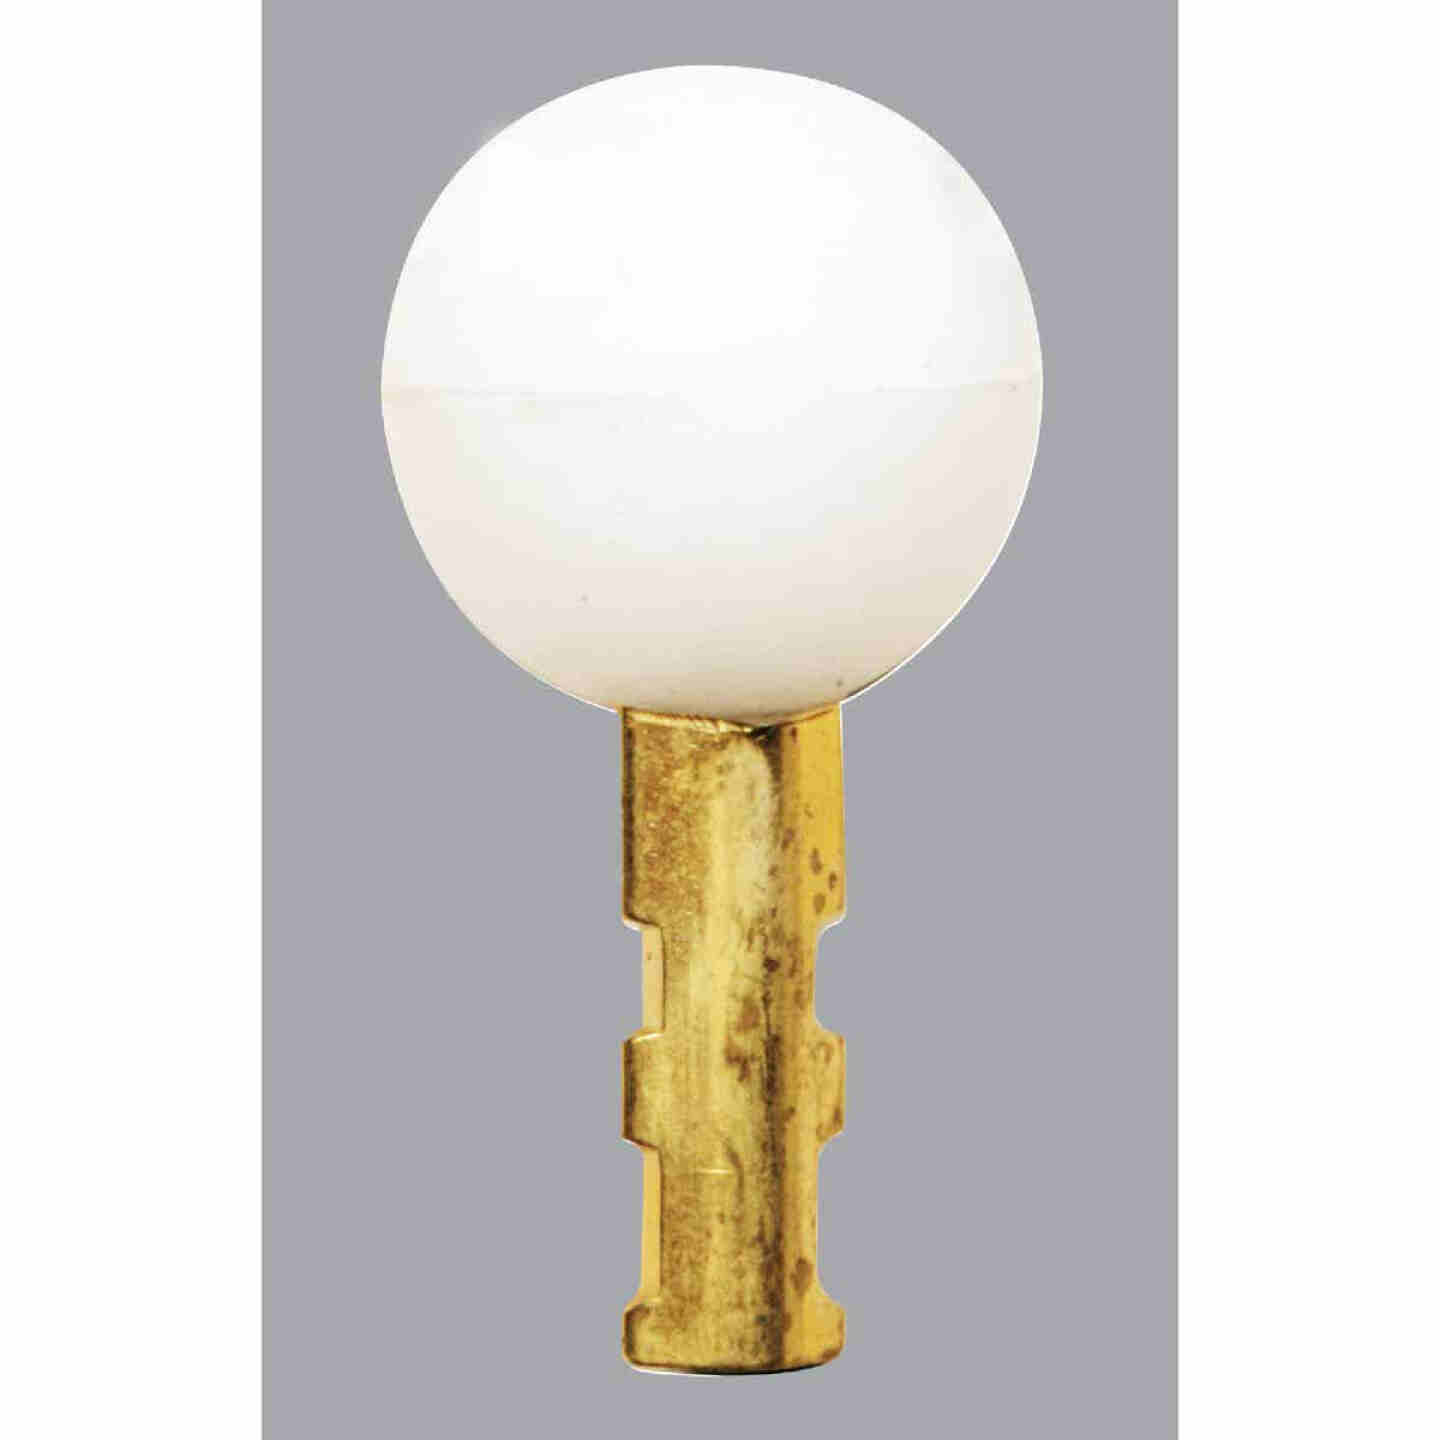 Do it Metal Ball Replacement for Delta 212 Crystal Handle/Peerless Image 1